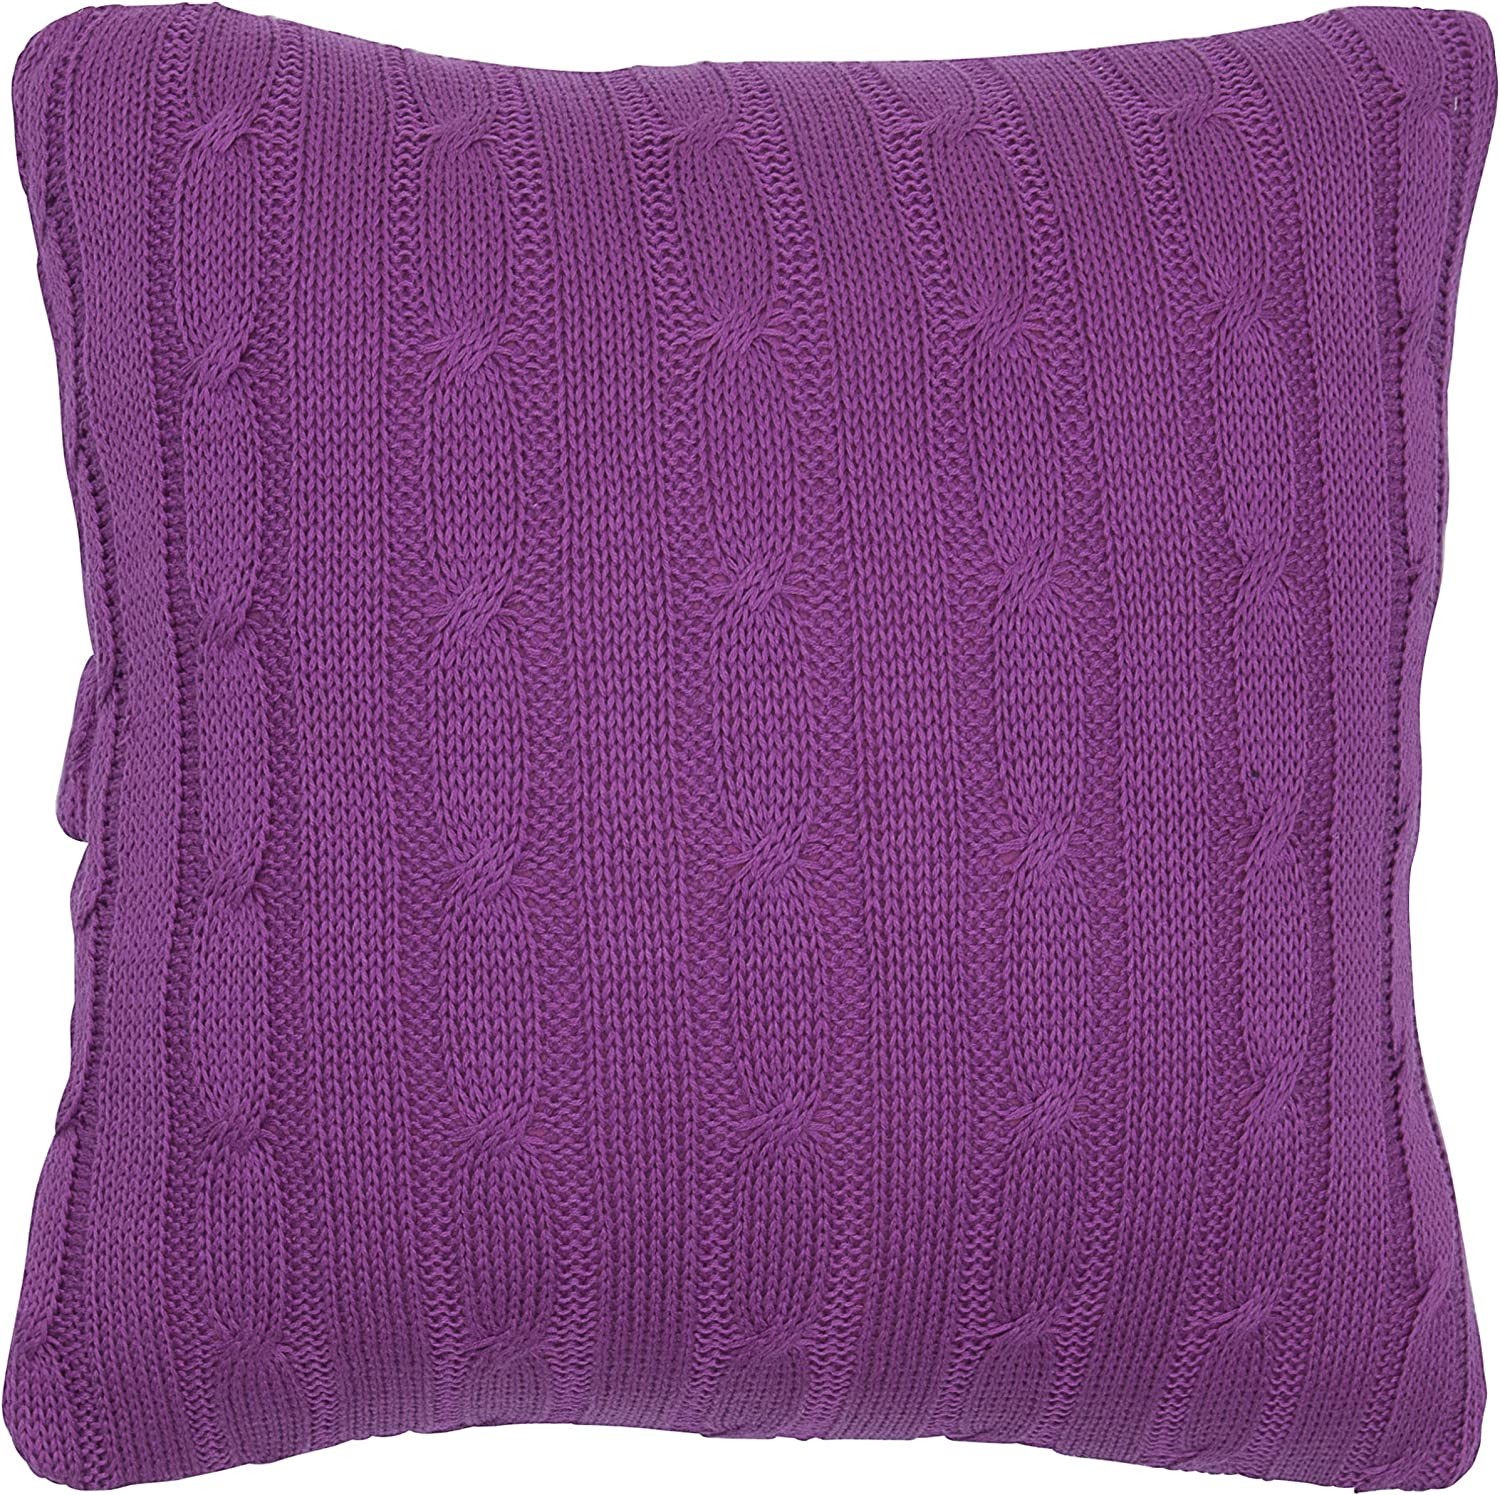 "Rizzy Home T05072 Decorative Pillow, 18""X18"", Raspberry"